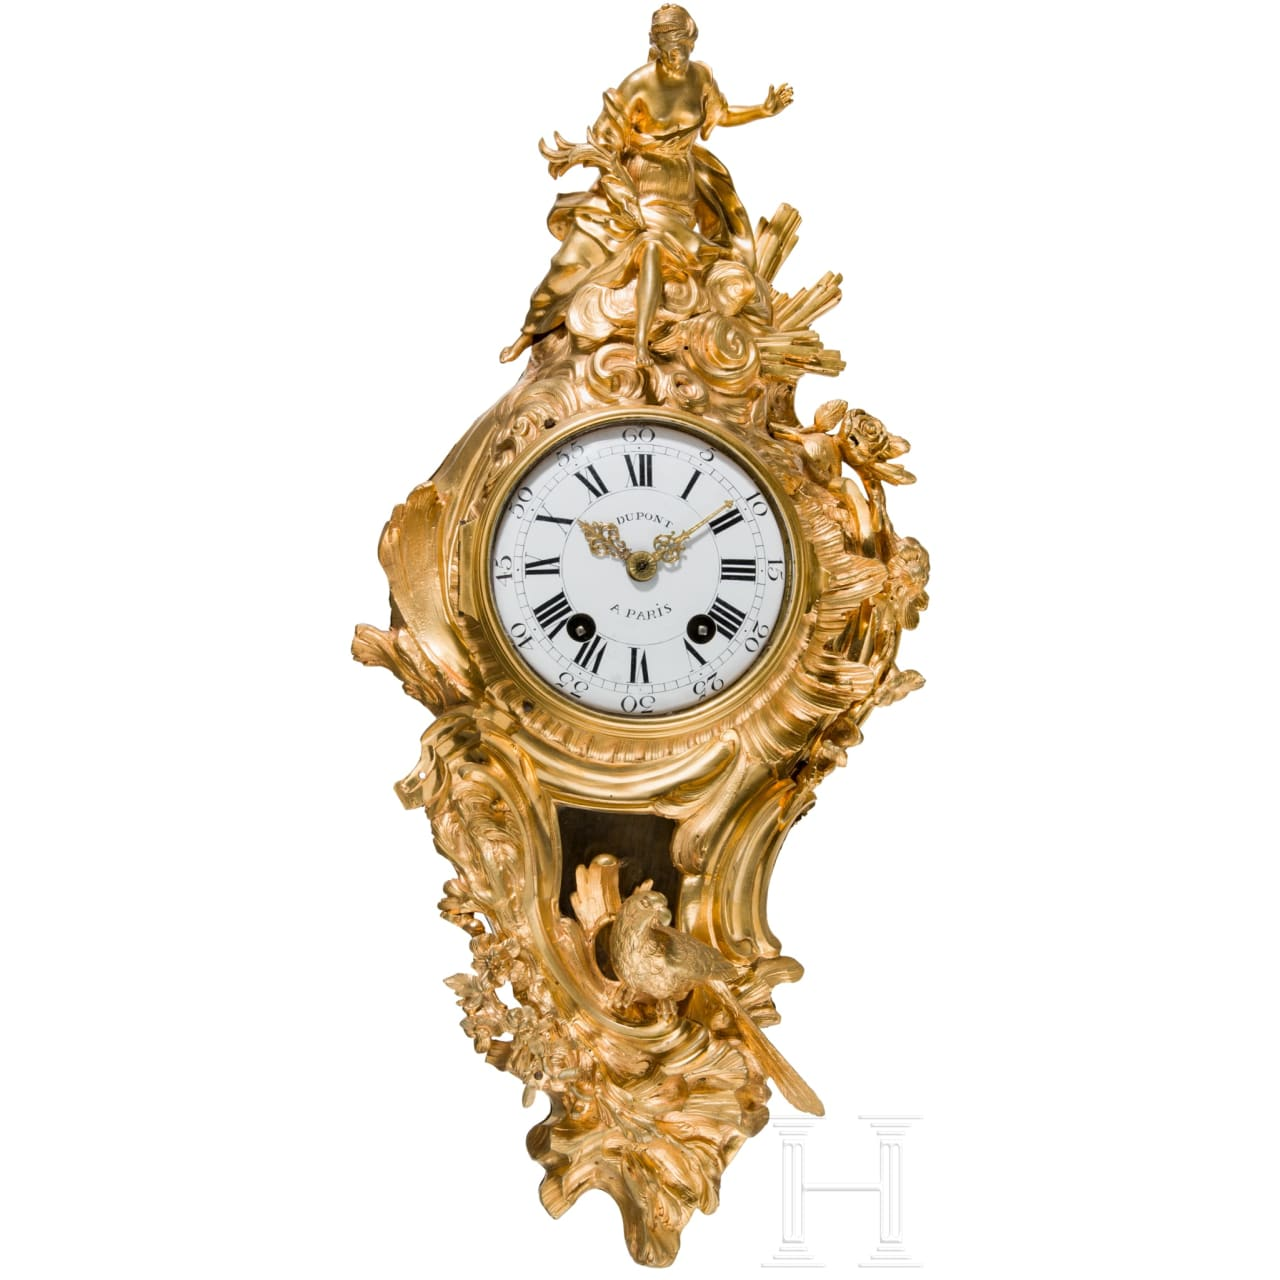 A fire-gilt Louis XV cartel clock, Dupont of Paris, mid-18th century